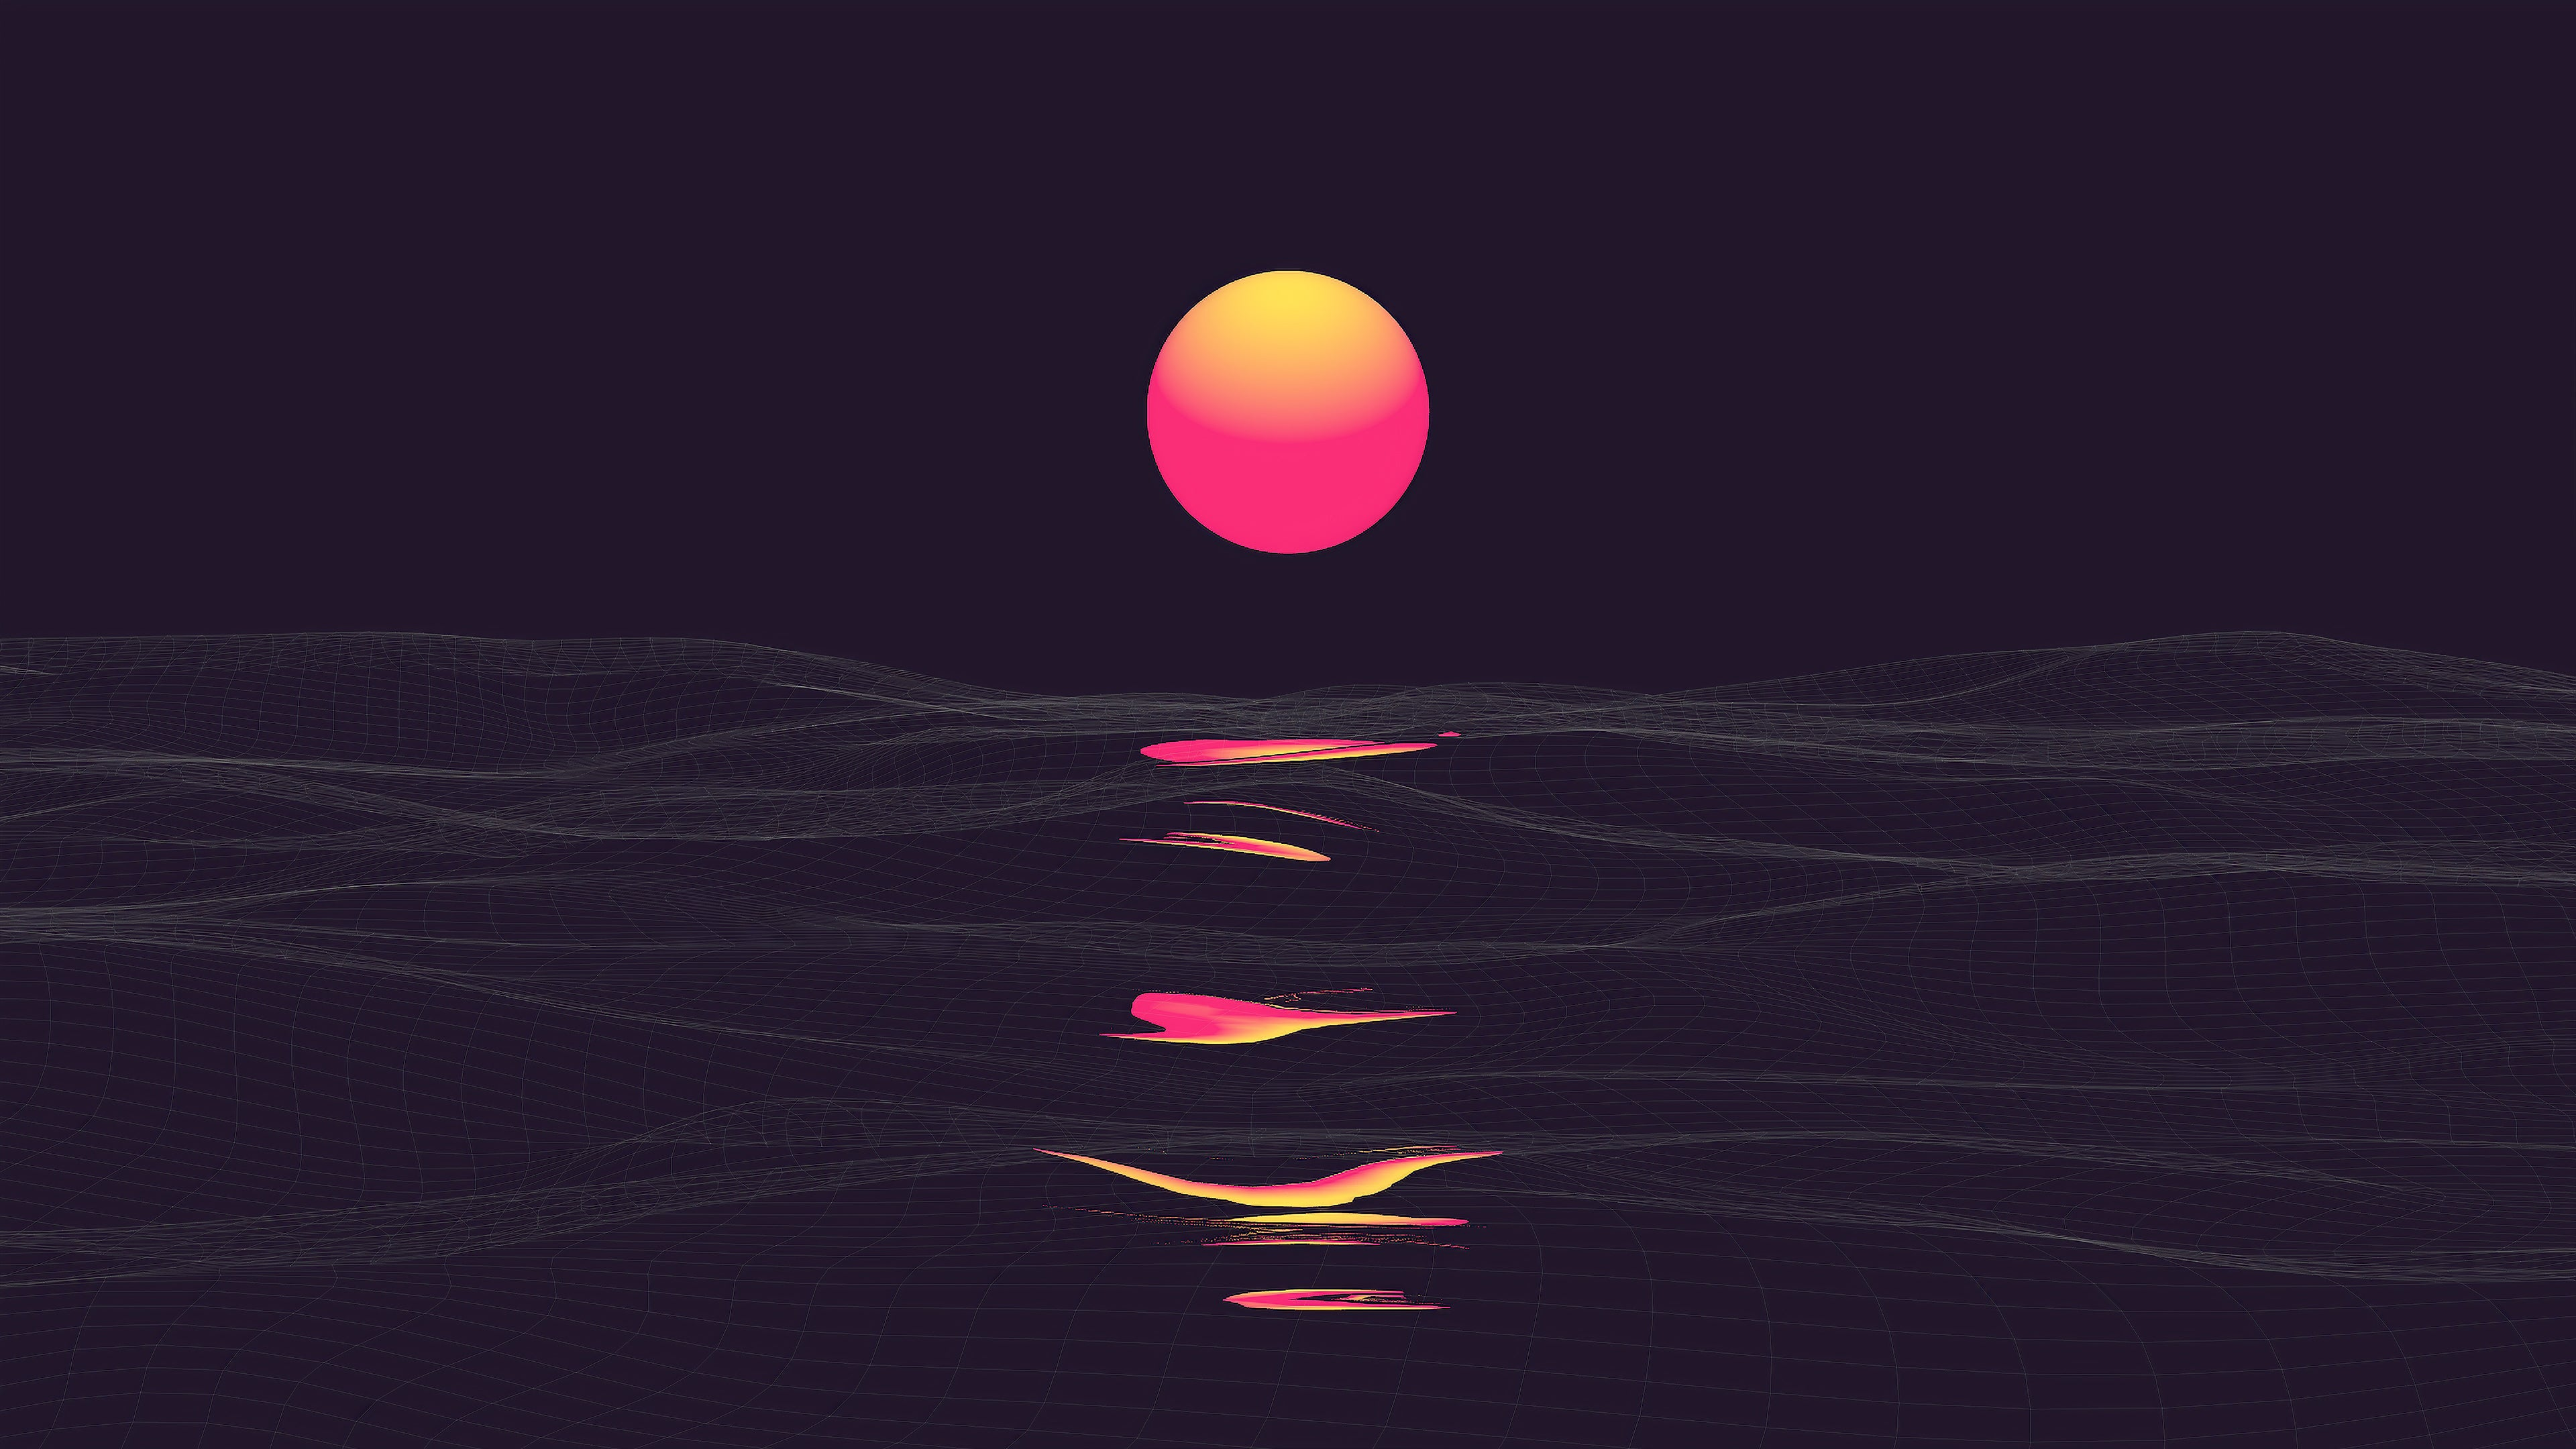 Free Download Retrowave 4k Wallpapers For Your Desktop Or Mobile Screen And 3840x2160 For Your Desktop Mobile Tablet Explore 36 Retro Wave 4k Pc Wallpapers Retro Wave 4k Pc